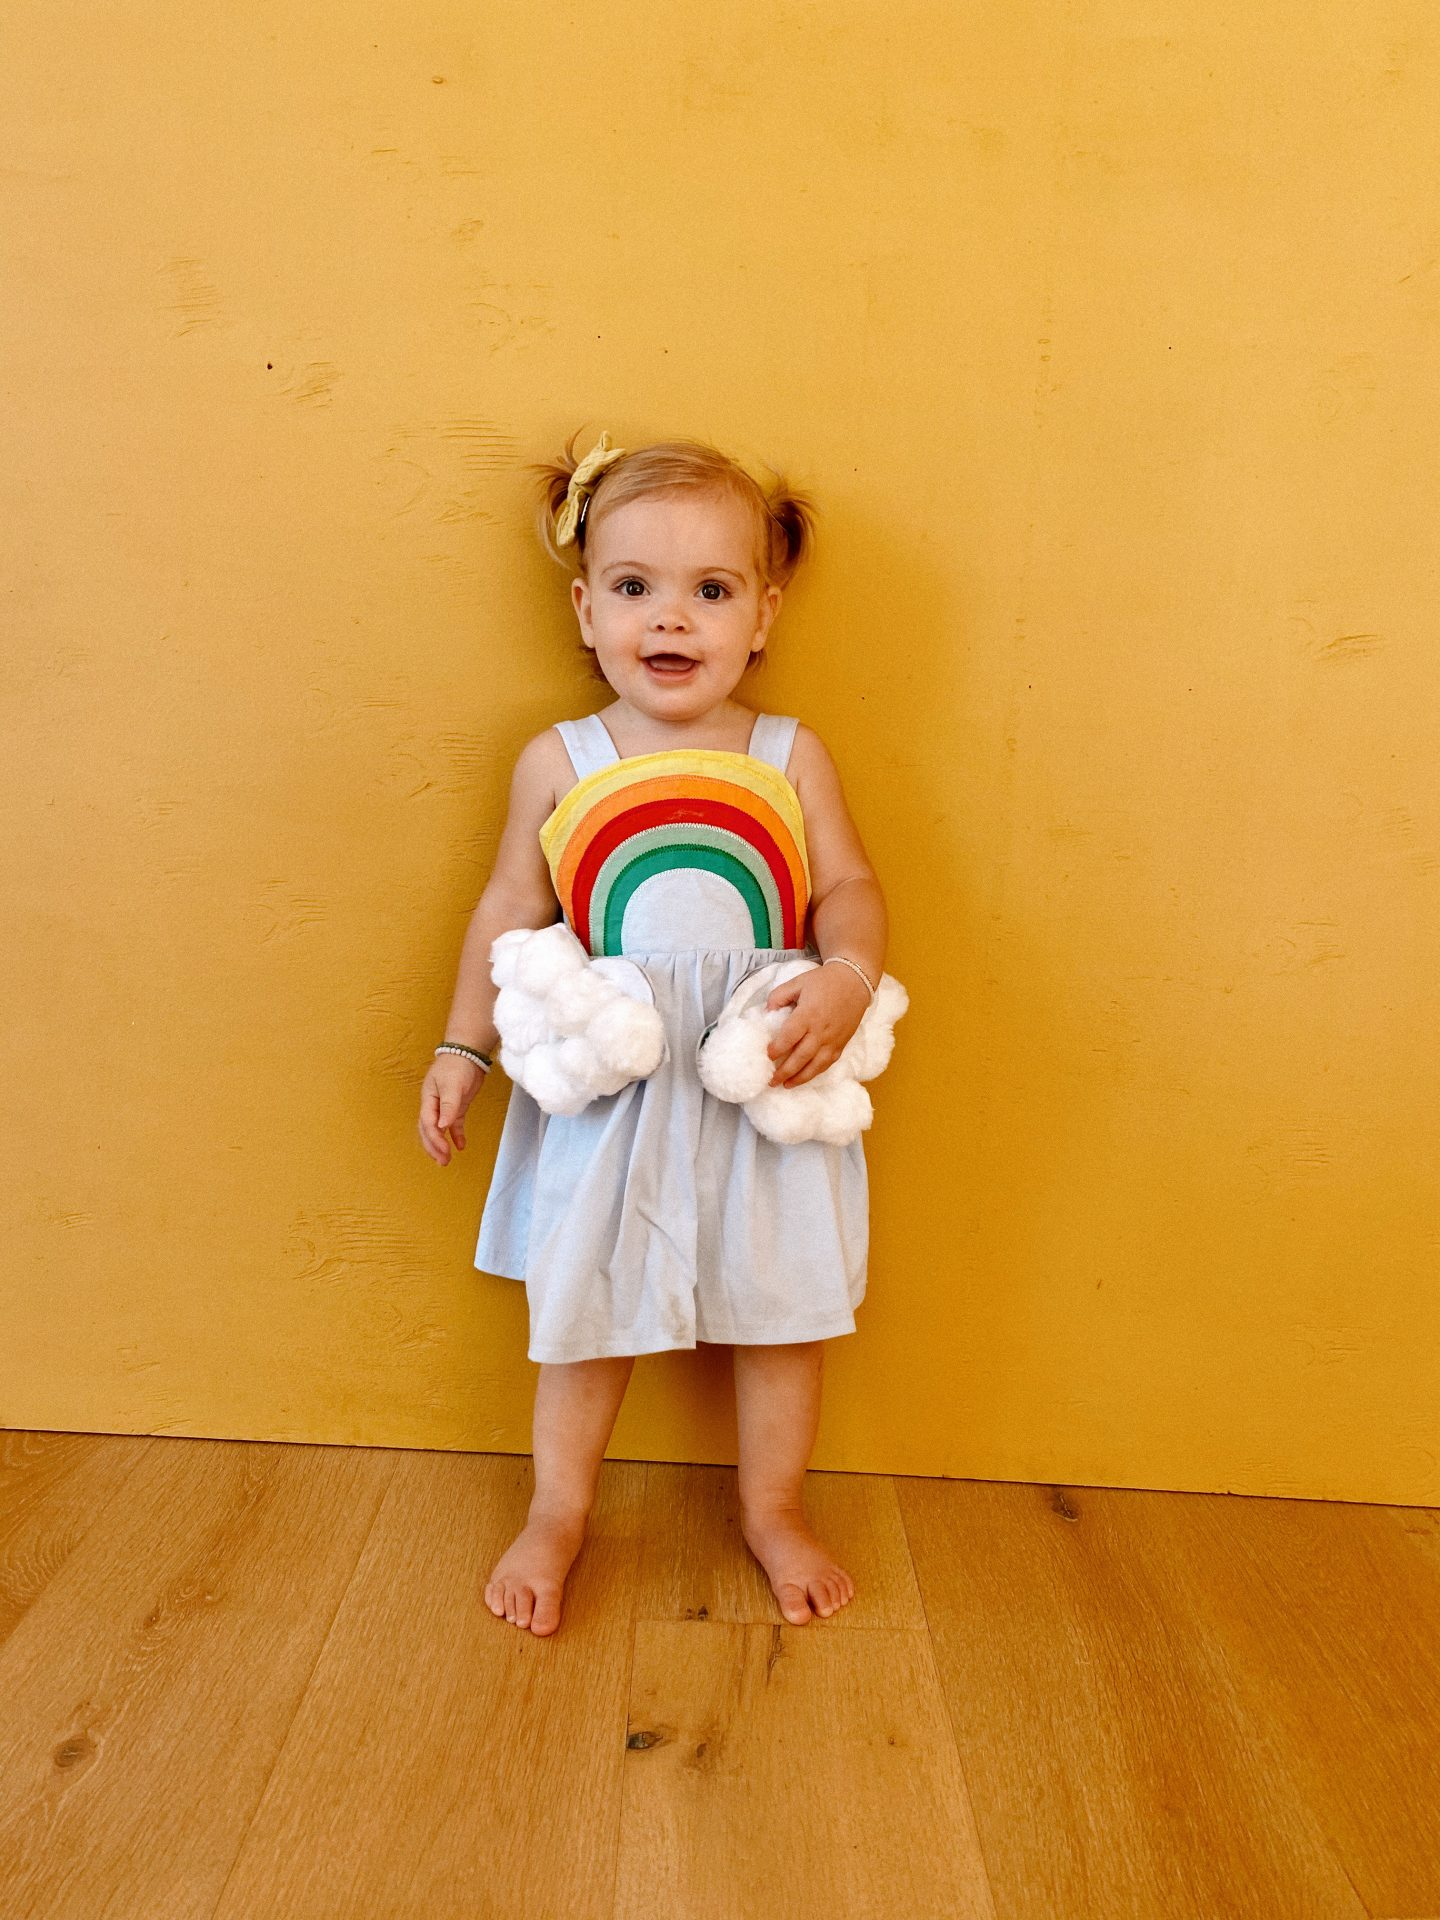 Family Halloween Costumes by popular San Diego lifestyle blog, Navy Grace: image of two young kids dressed up as a rainbow and a rain cloud.